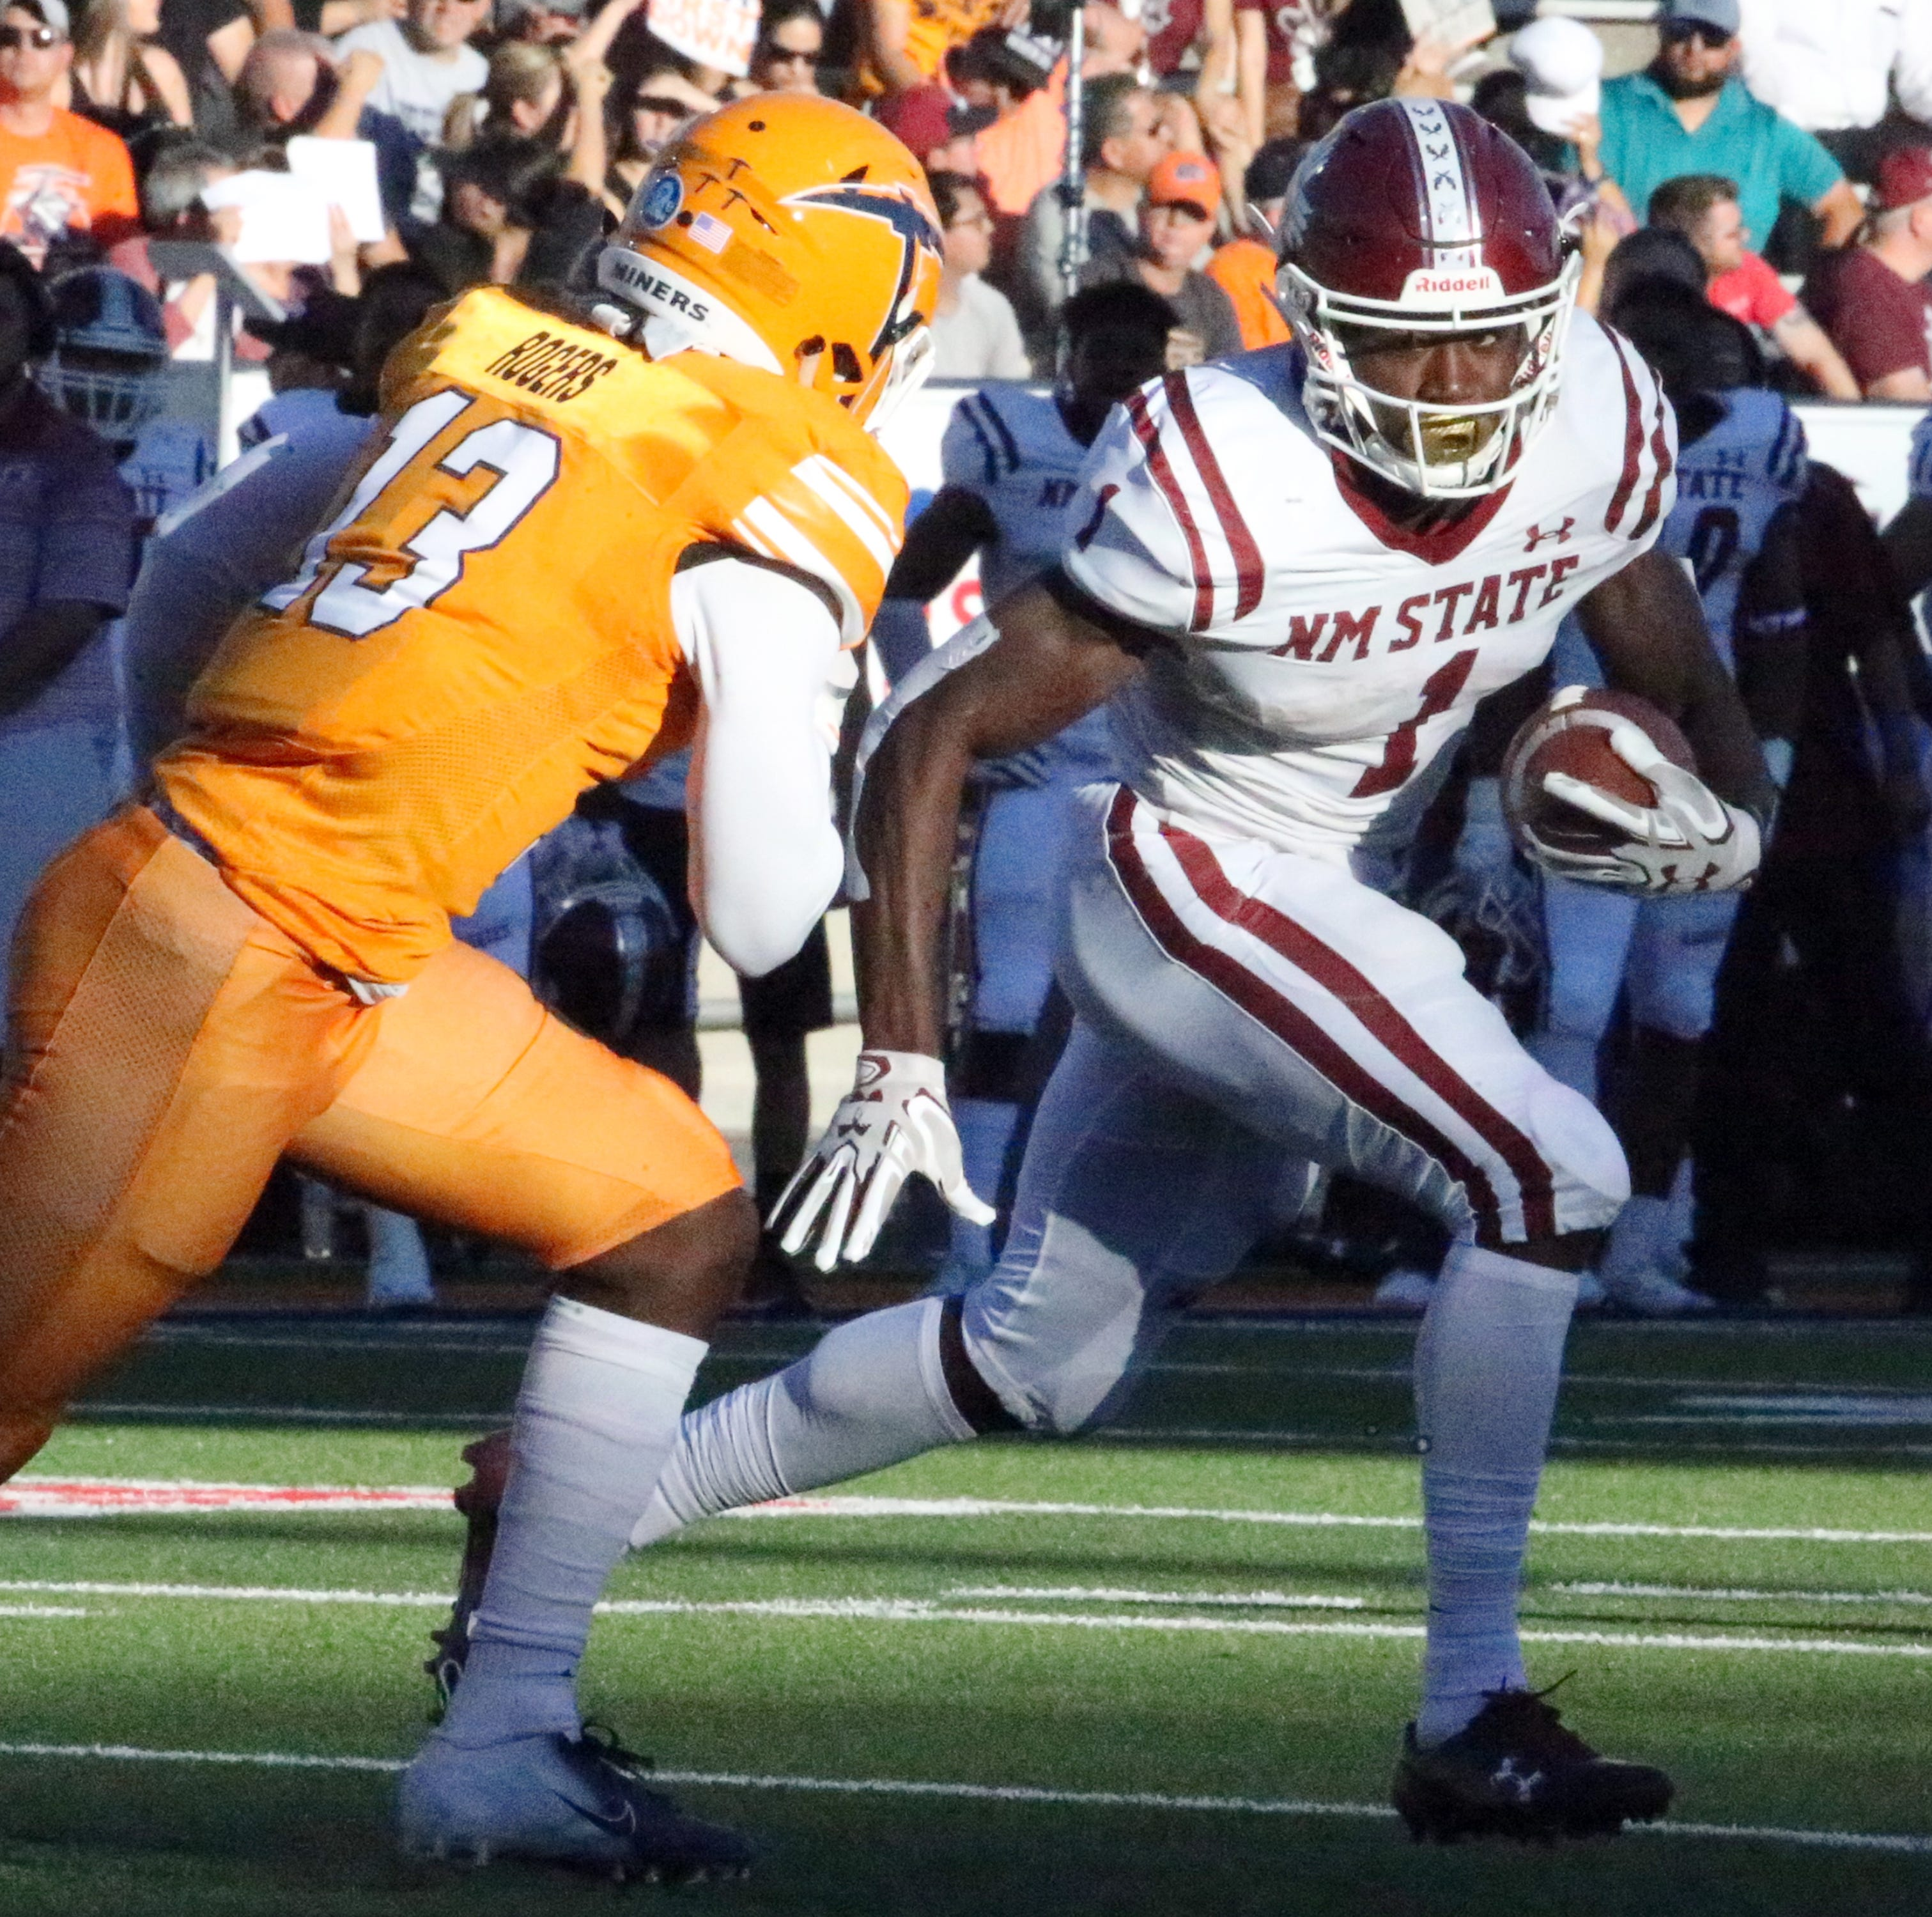 New Mexico State knocks off UTEP for first win of season